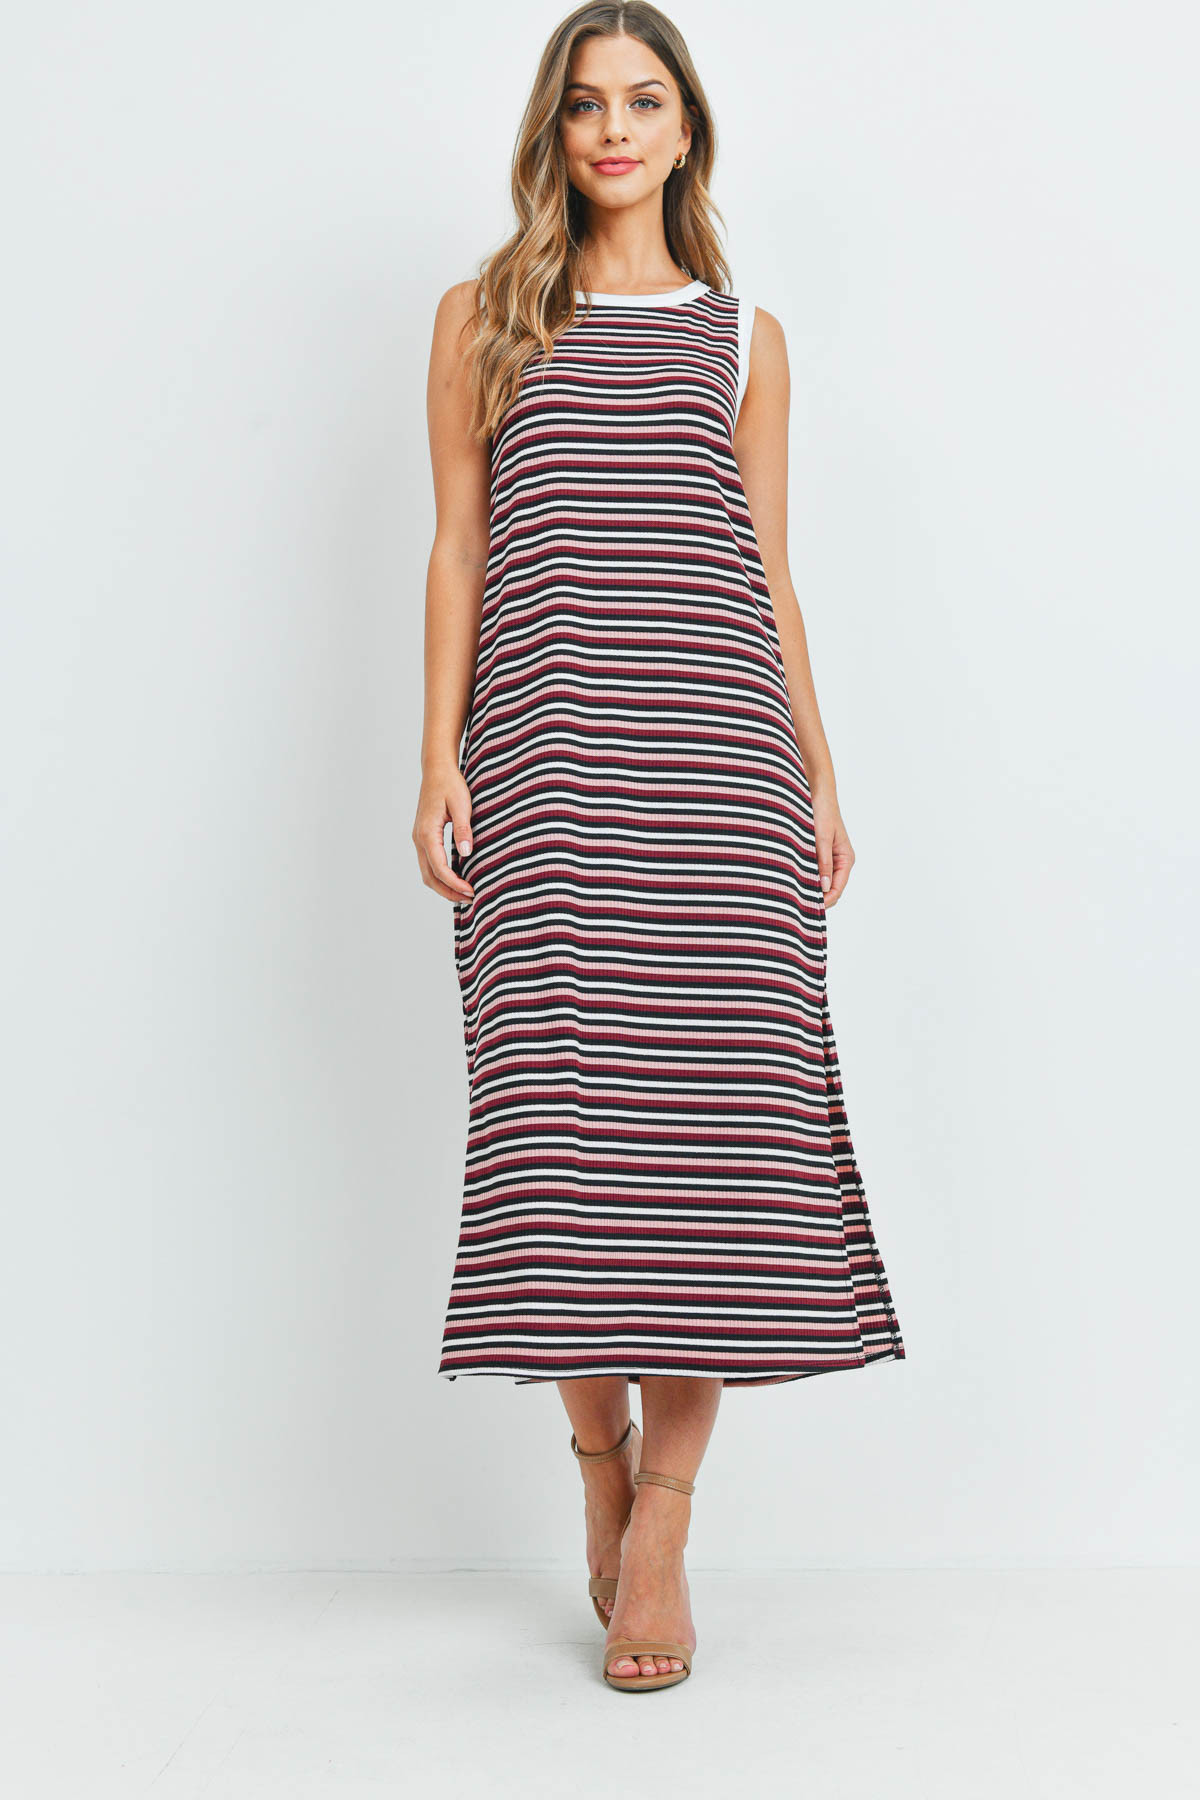 S12-12-1-PPD1106-BLSBUBKIV - RIB MULTI-COLOR STRIPES MAXI DRESS WITH SIDE SLIT- BLUSH/BURGUNDY/BLACK/IVORY-IVORY 1-2-2-2